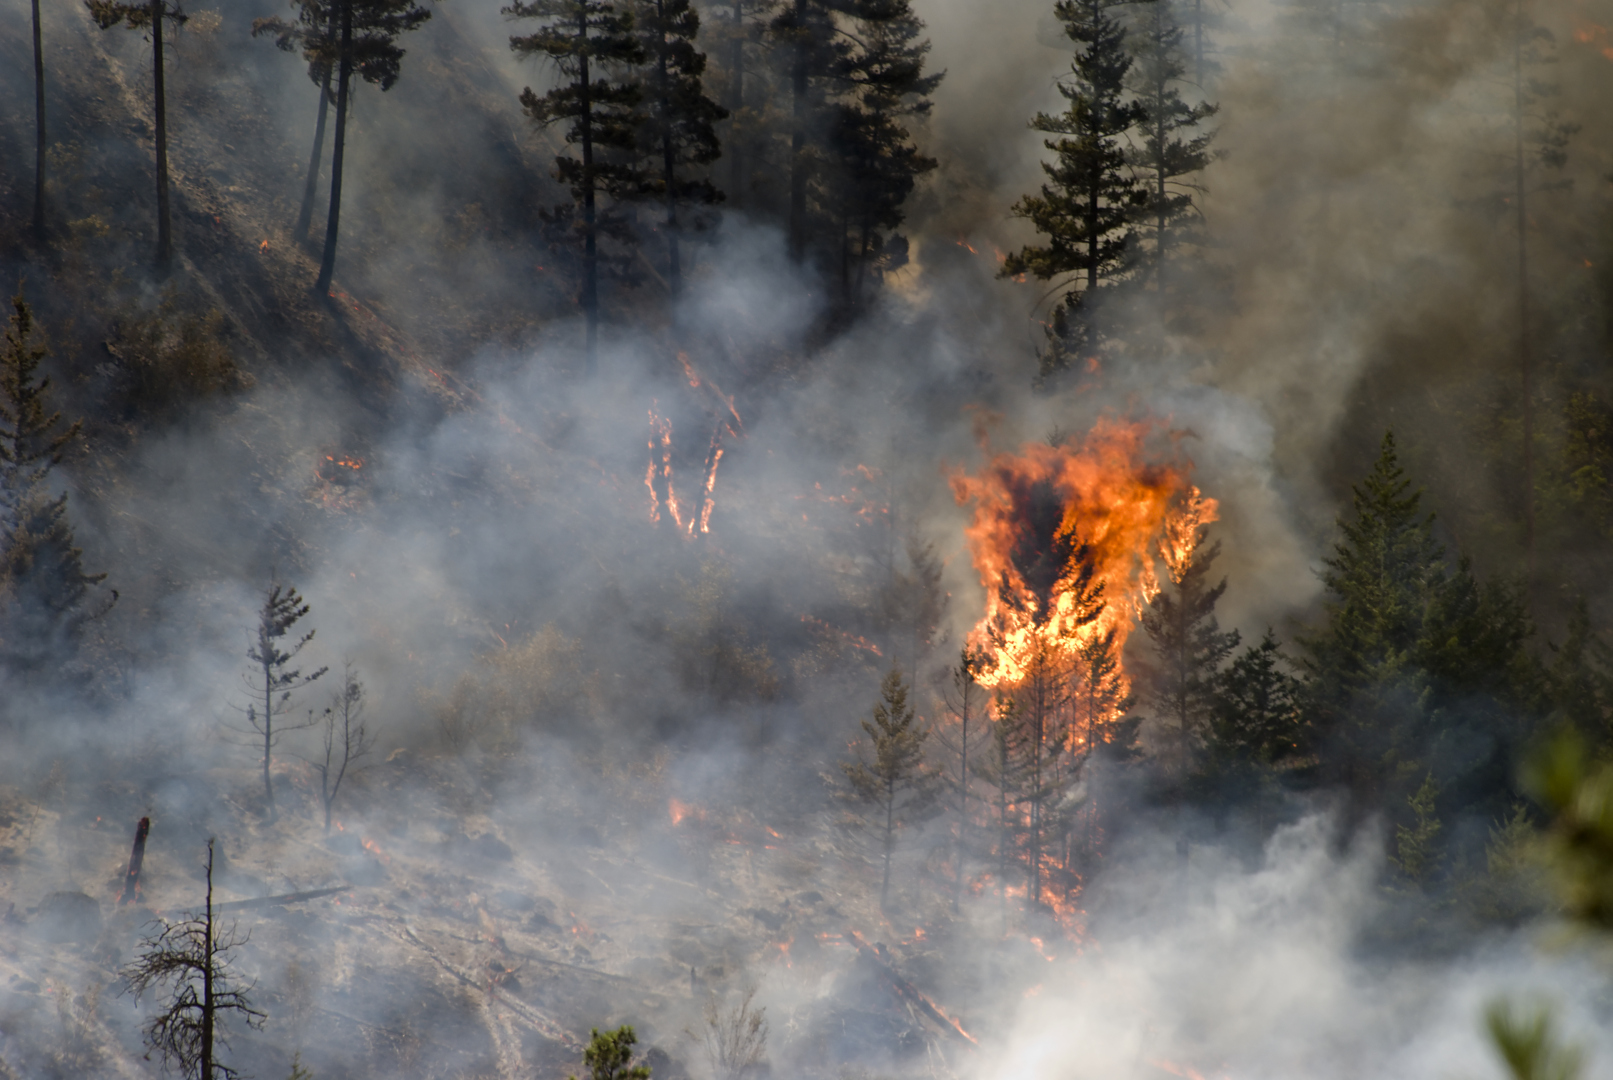 Analysis of Avoided Water Utility Costs from Wildfire Risk Mitigation